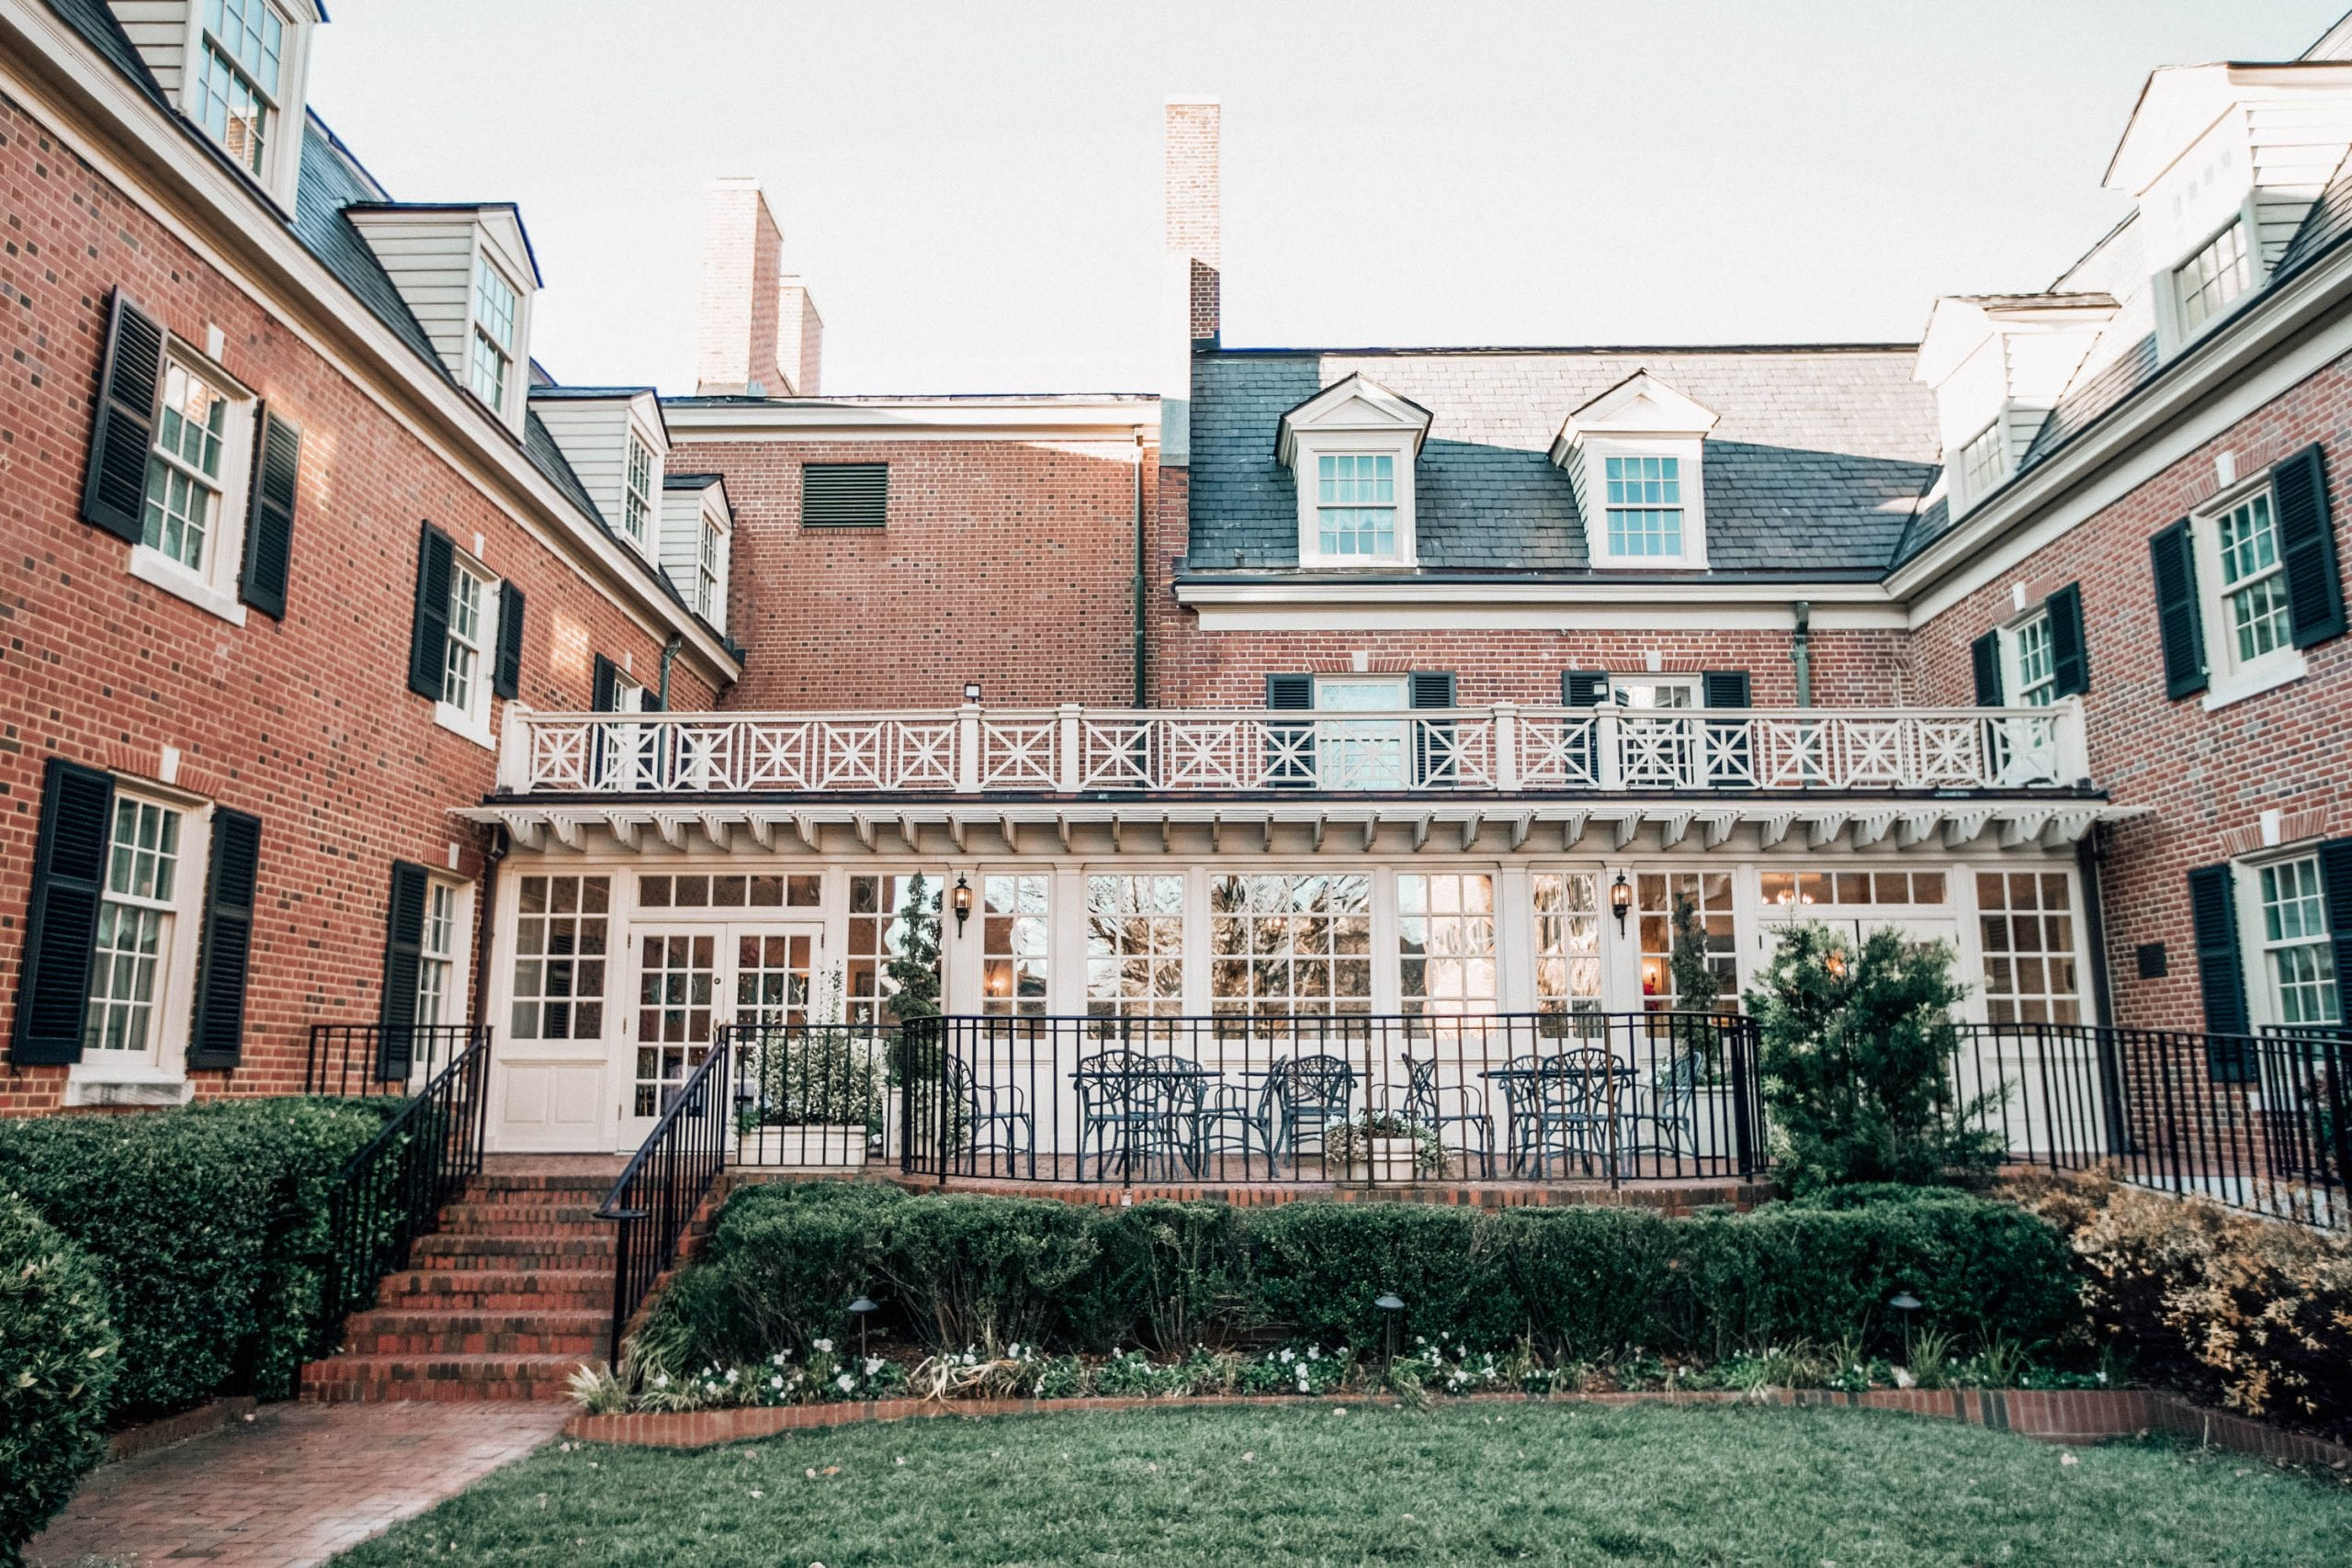 The Carolina Inn Staycation